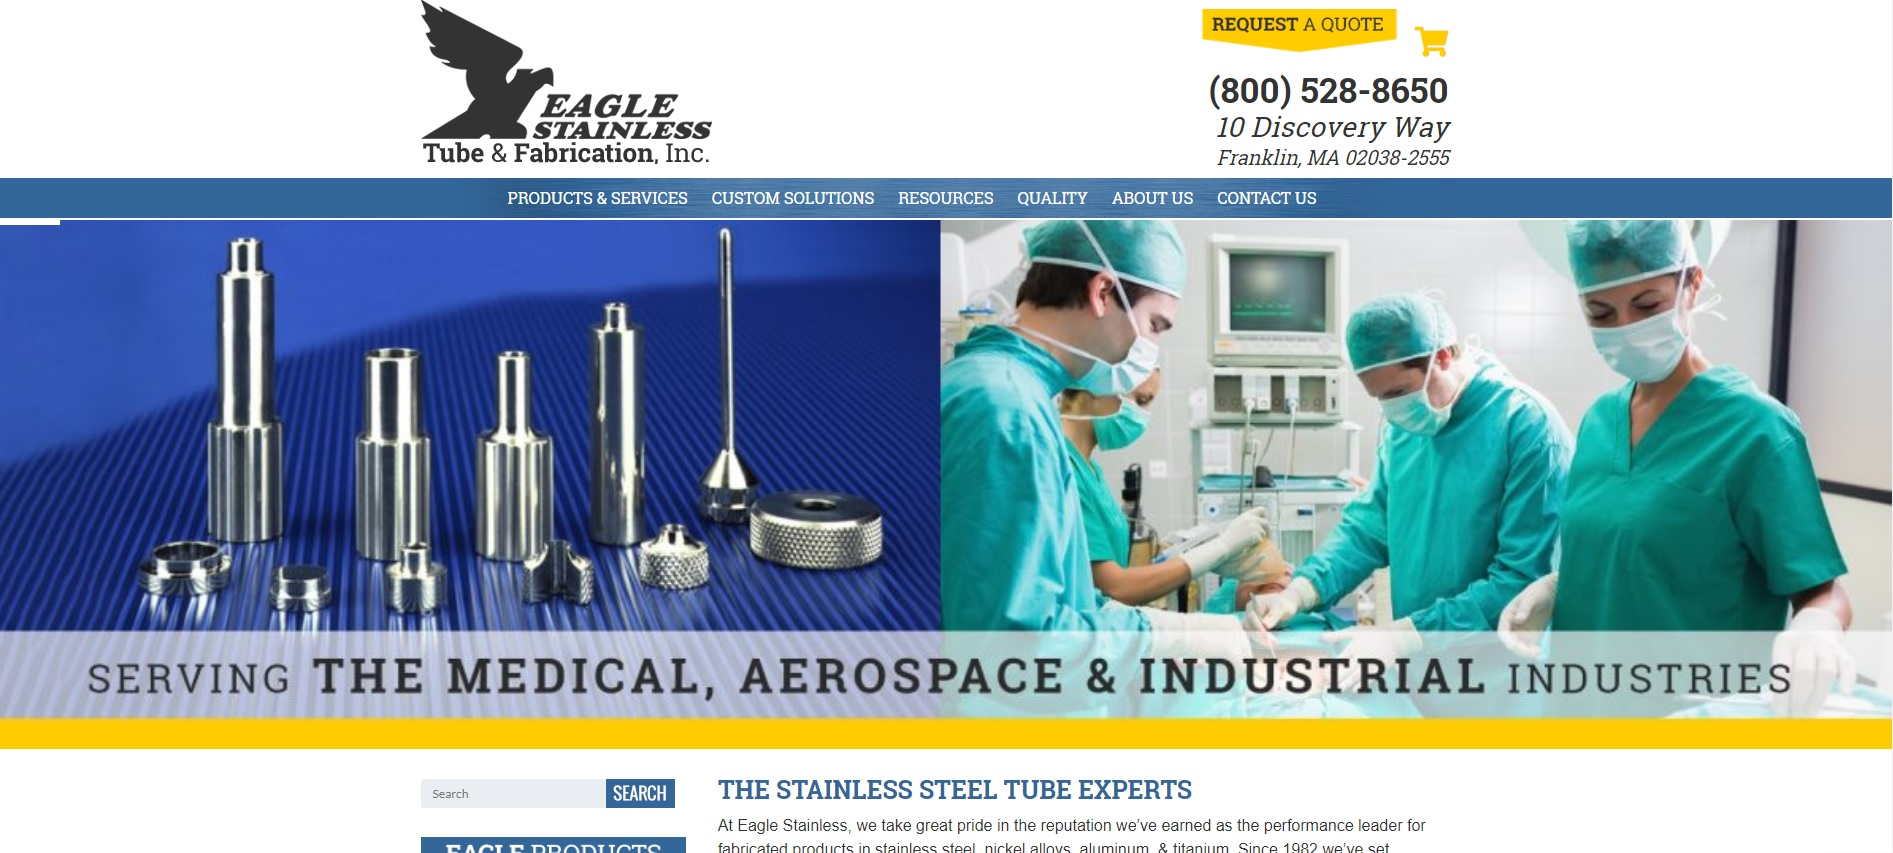 Eagle Stainless Tube & Fabrication Inc.